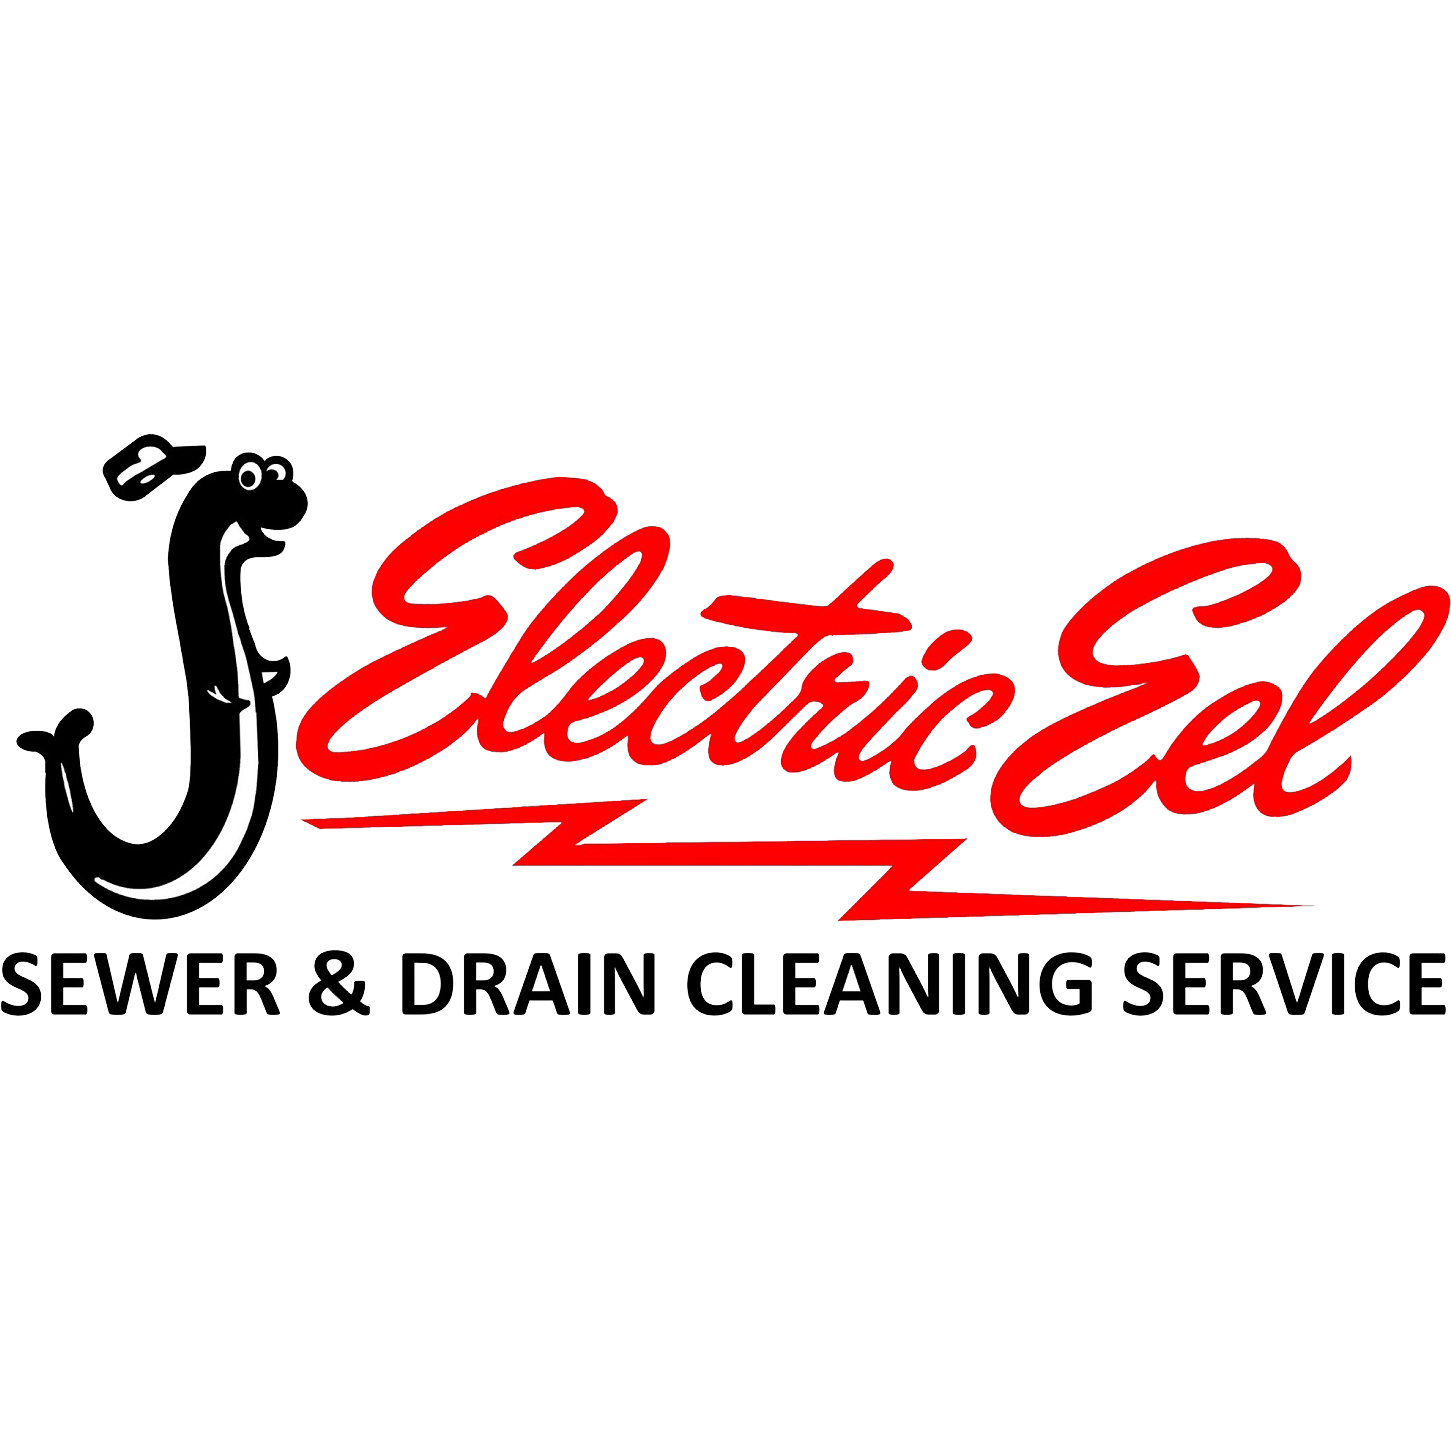 Electric EEL Sewer & Drain Cleaning